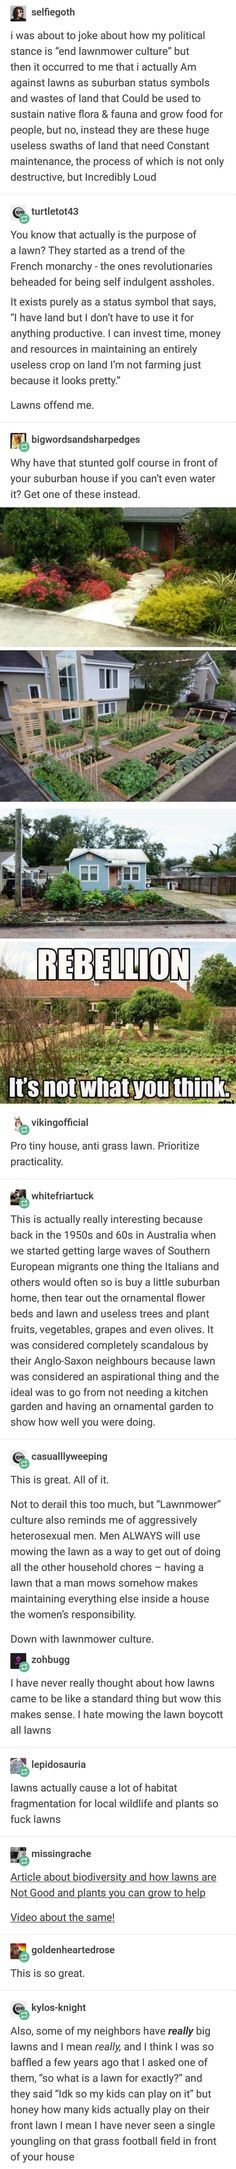 Sex while mowing field